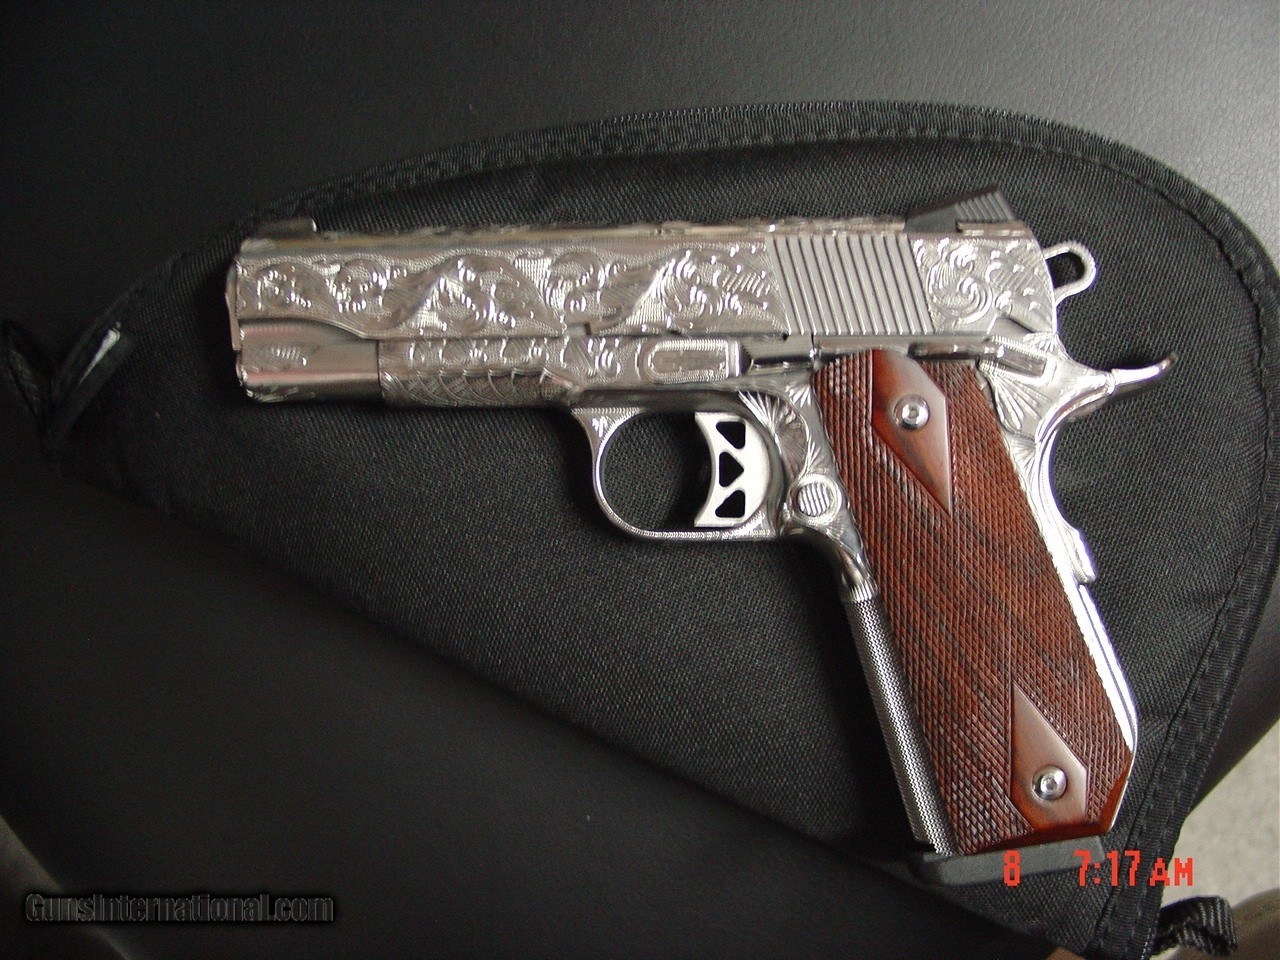 Dan Wesson 1911 Commander Bobtail 45acp,fully engraved & polished by